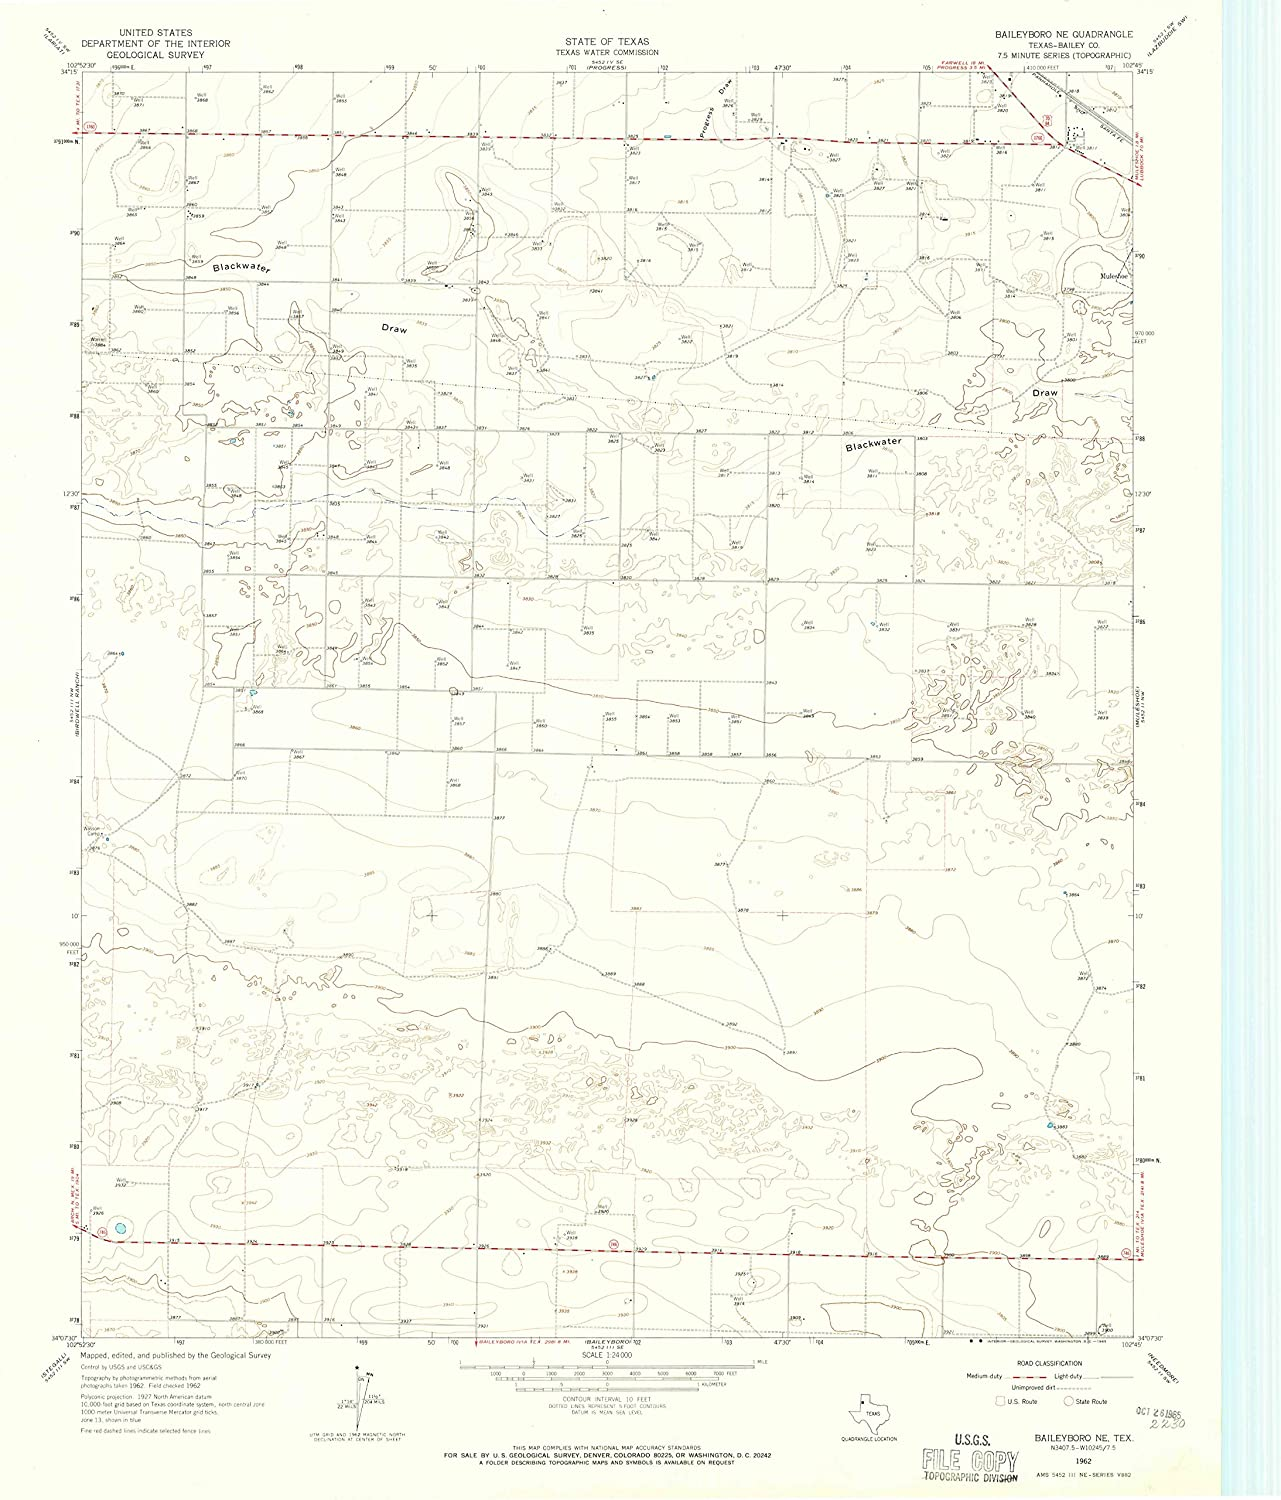 Map Print - Baileyboro NE, Texas (1962), 1:24000 Scale - 24